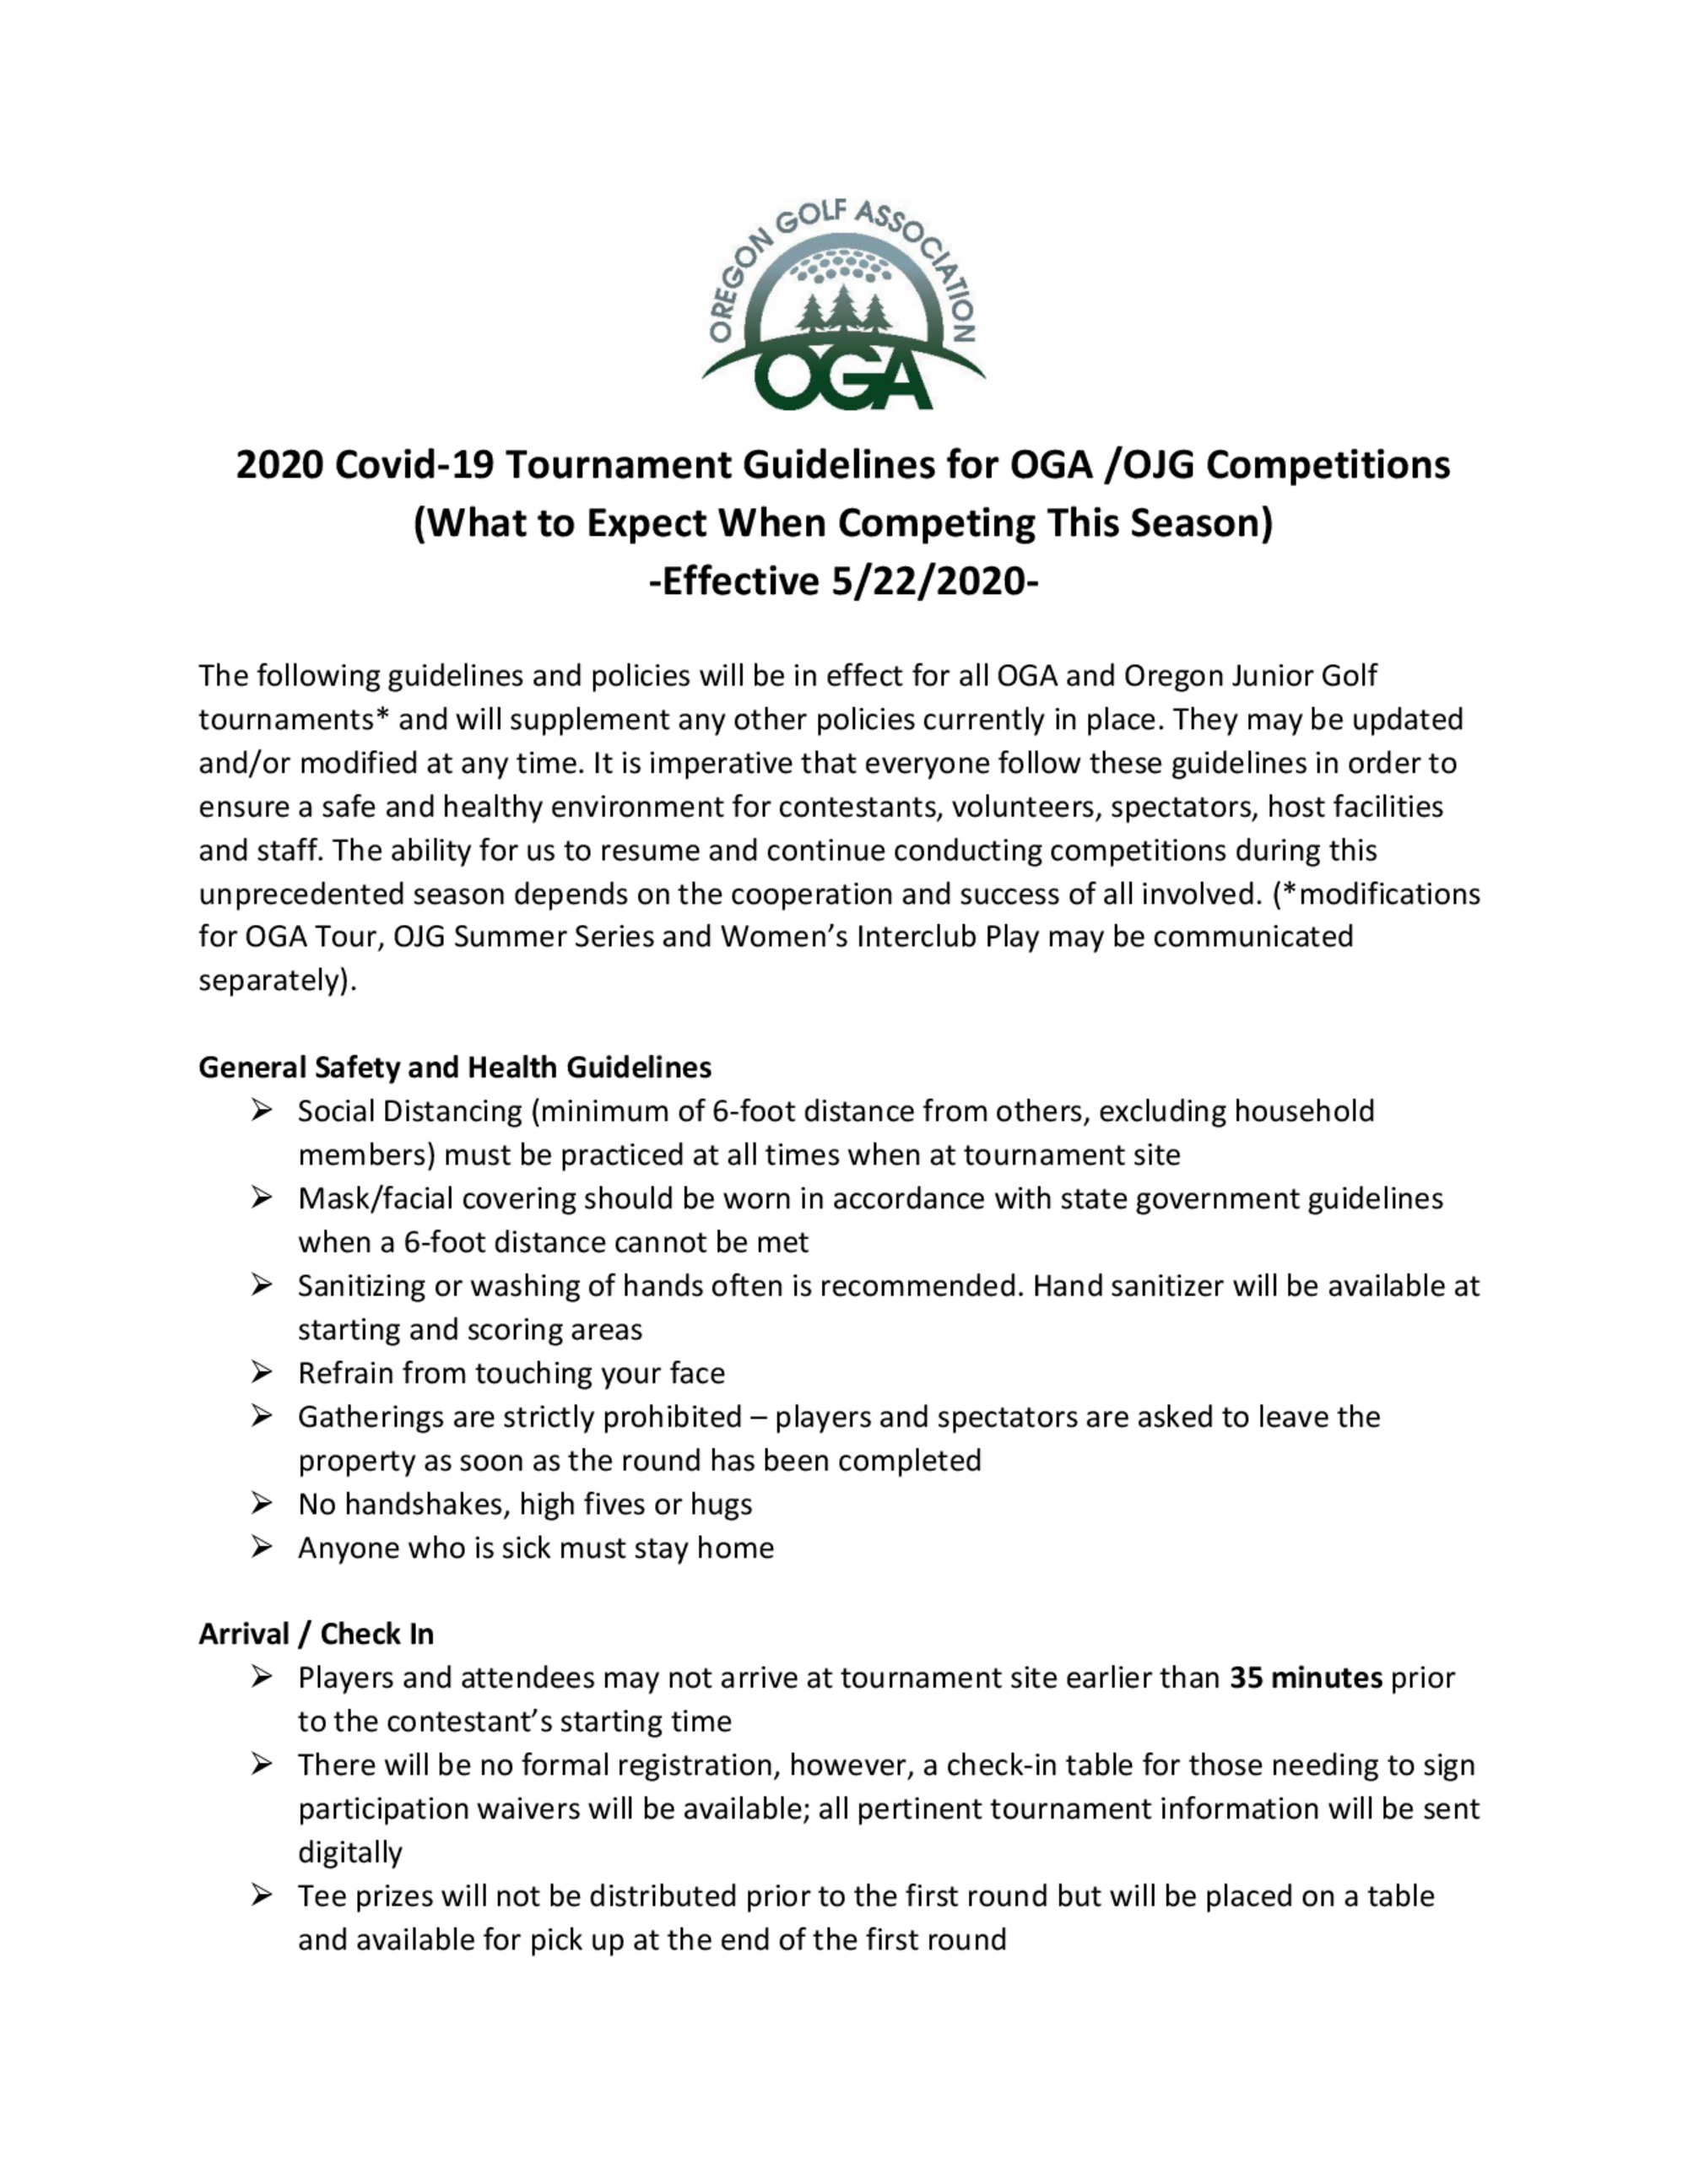 Oga 2020 covid guidelines for competitions 1